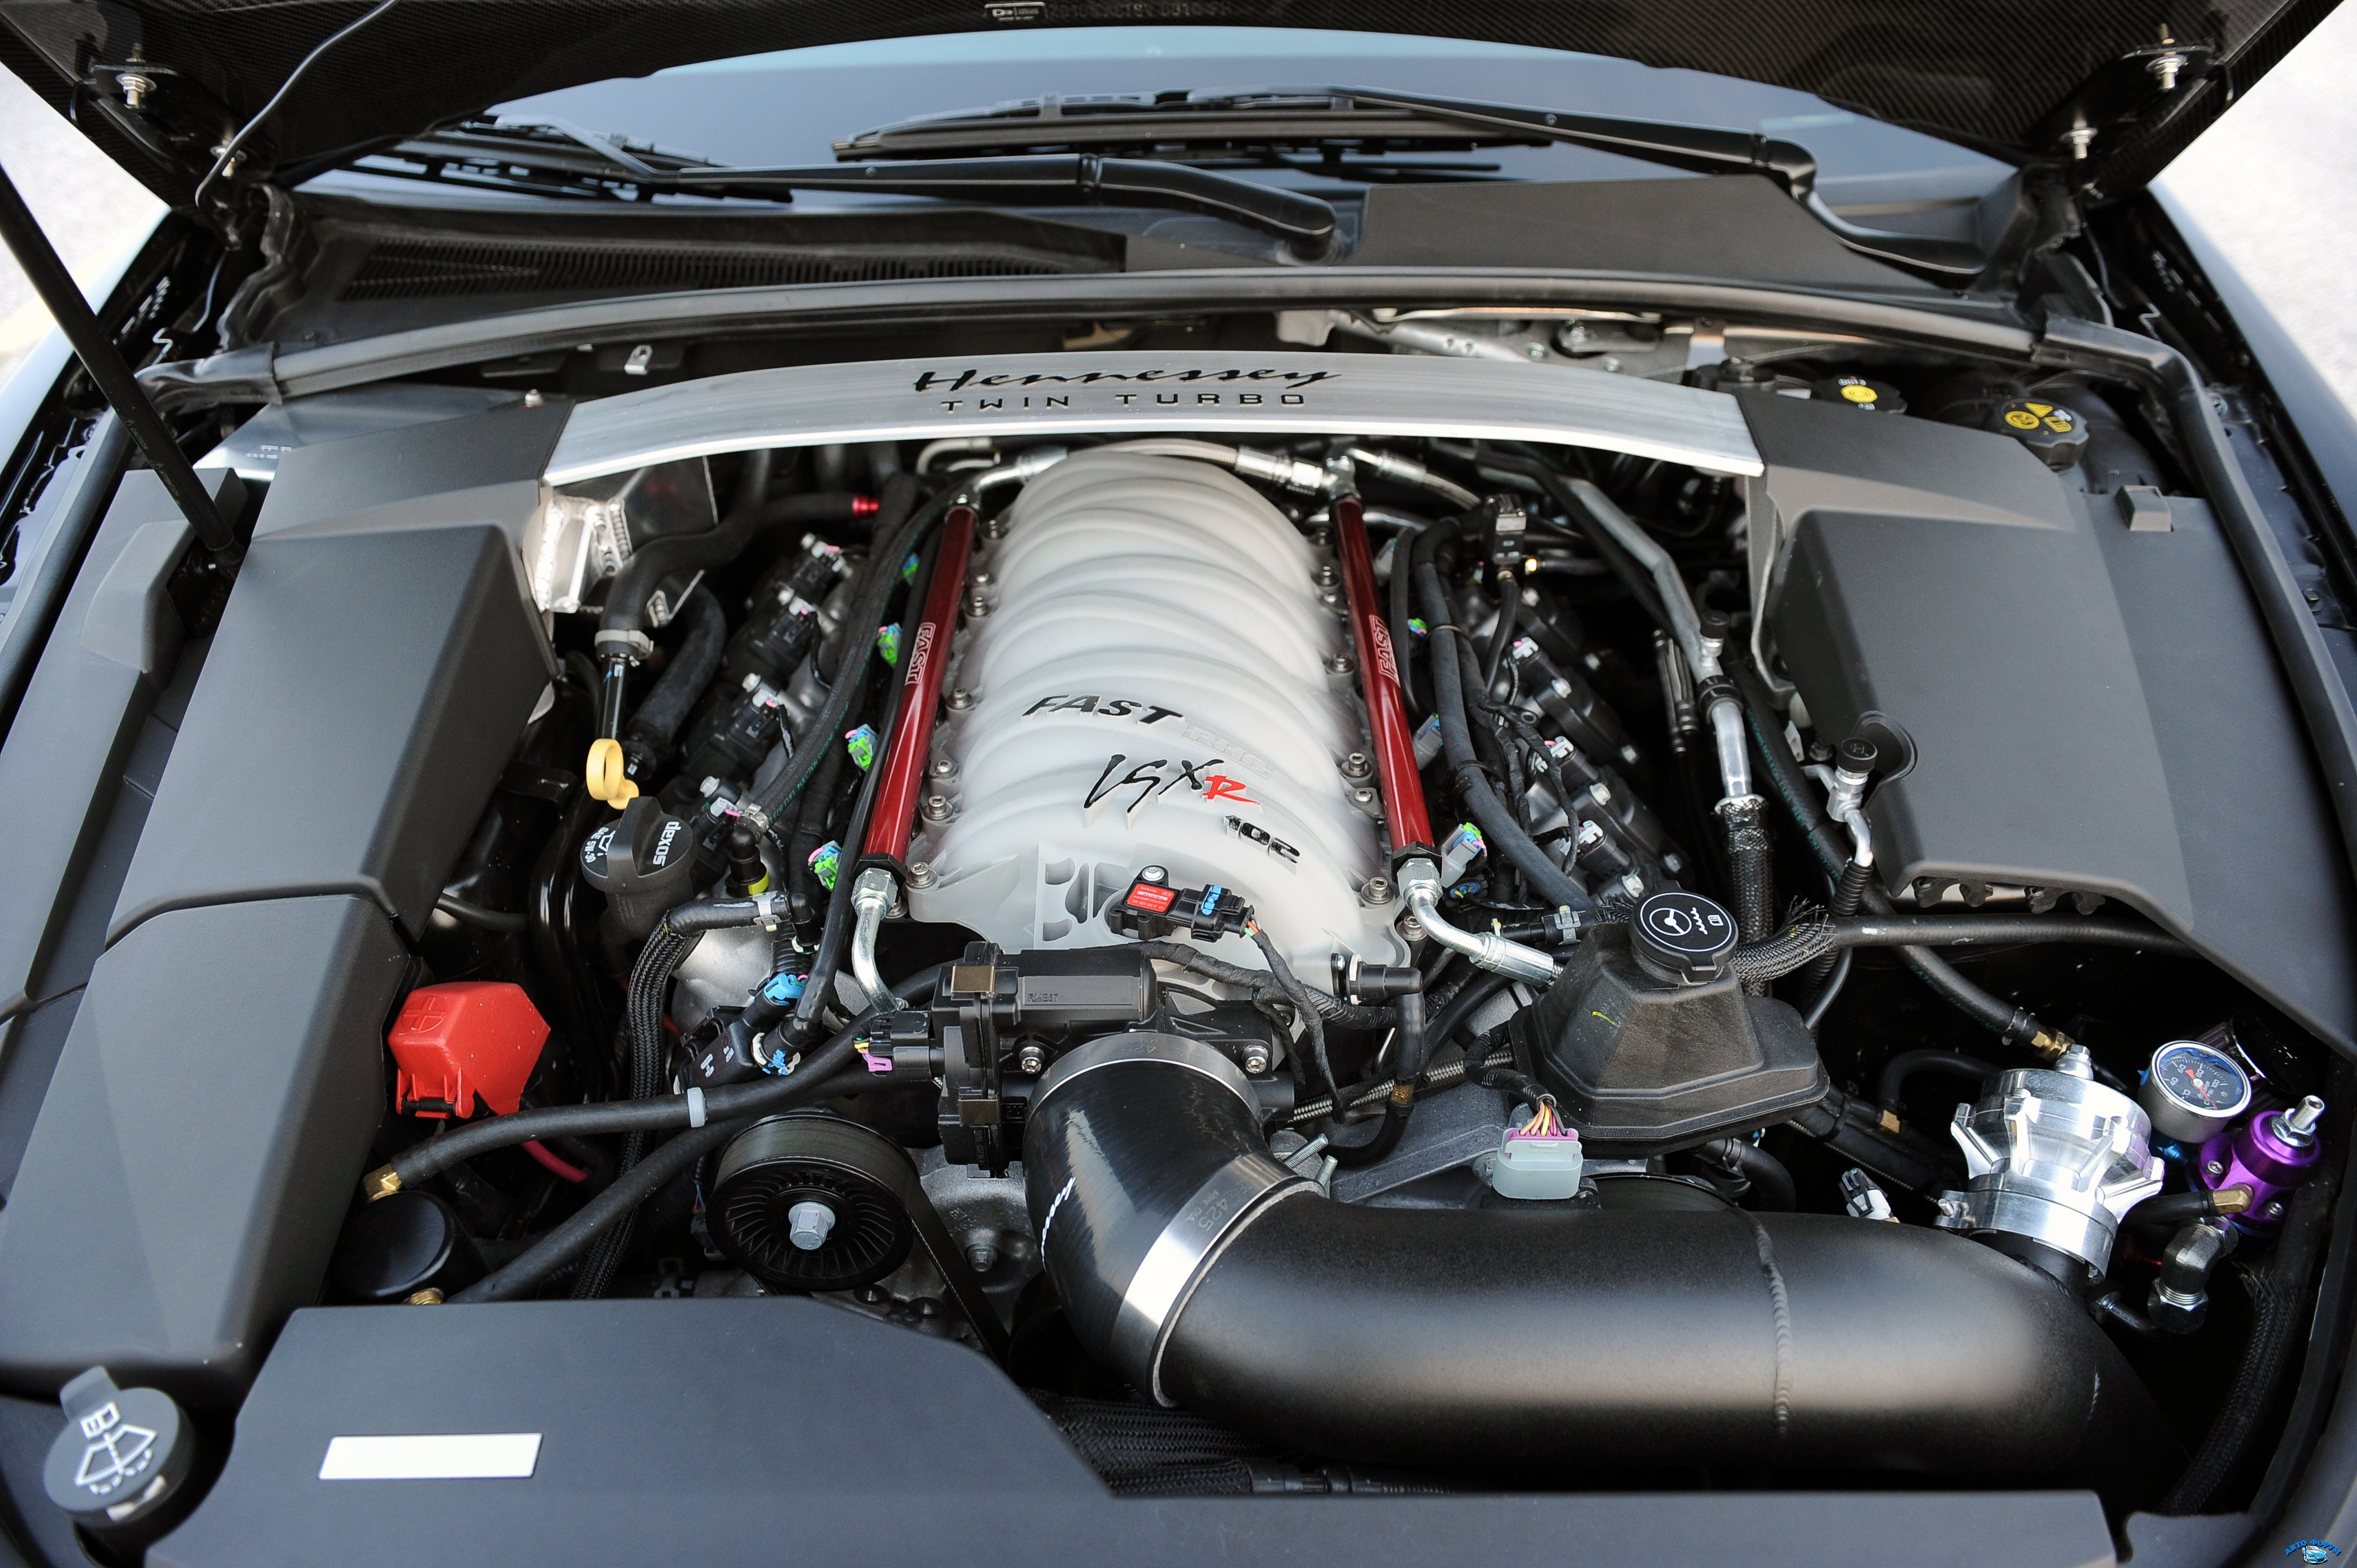 hennessey_cadillac_vr1200_twin_turbo-twin-turbo_engine_30.jpg